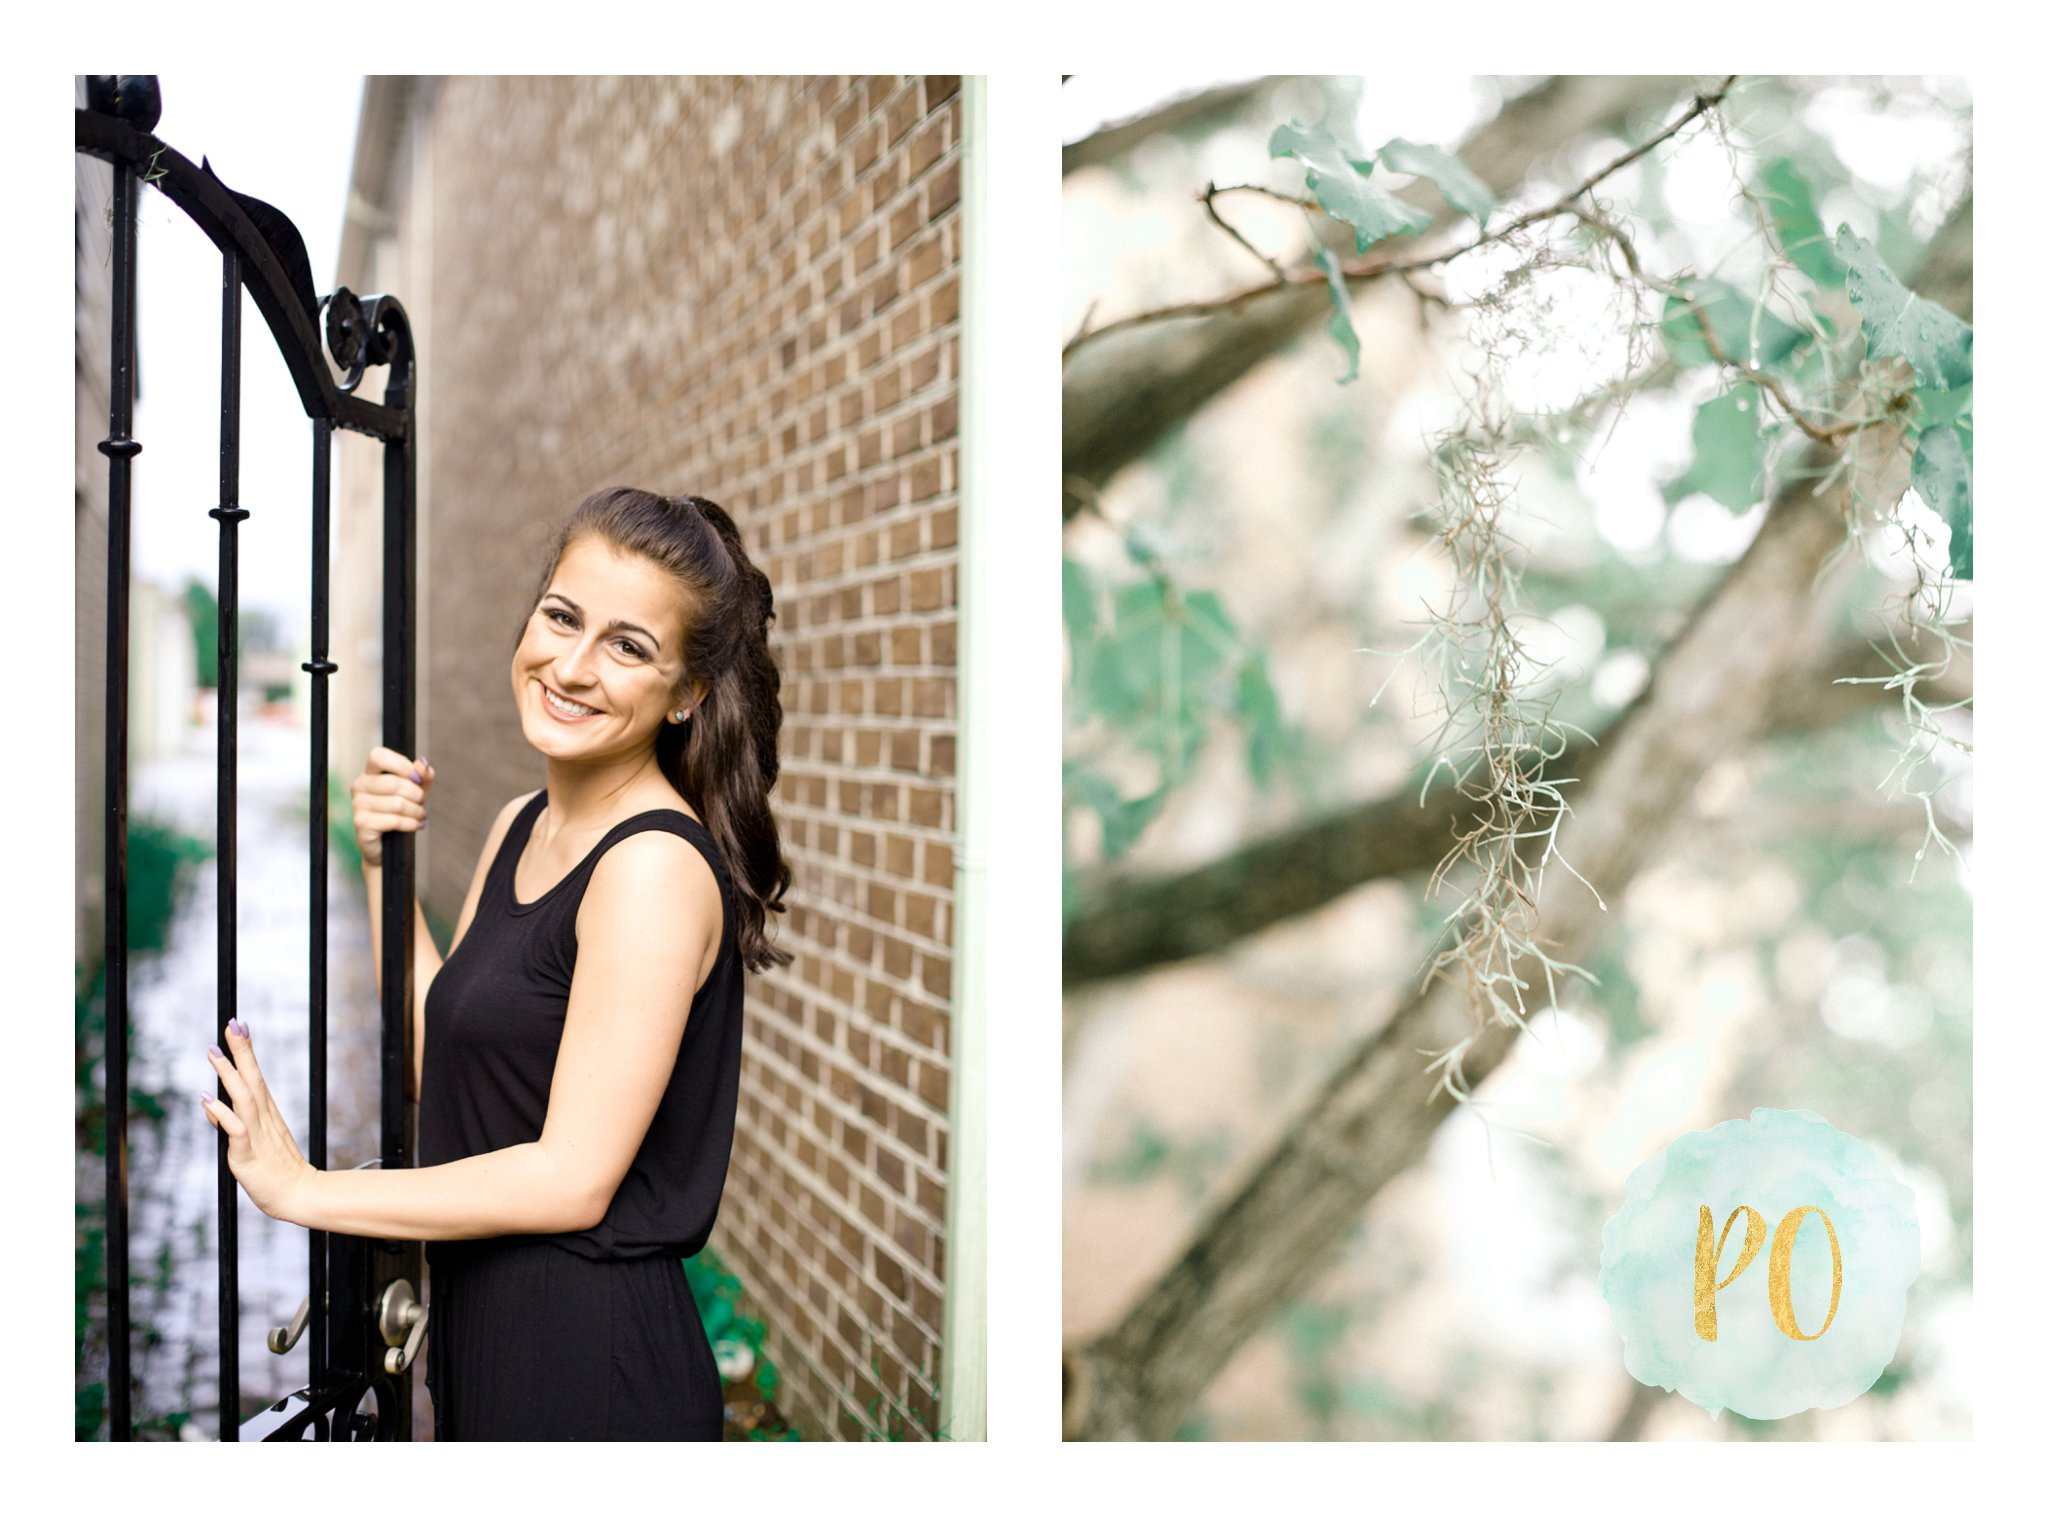 downtown-senior-session-conway-sc-myrtle-beach-photos_0016.jpg